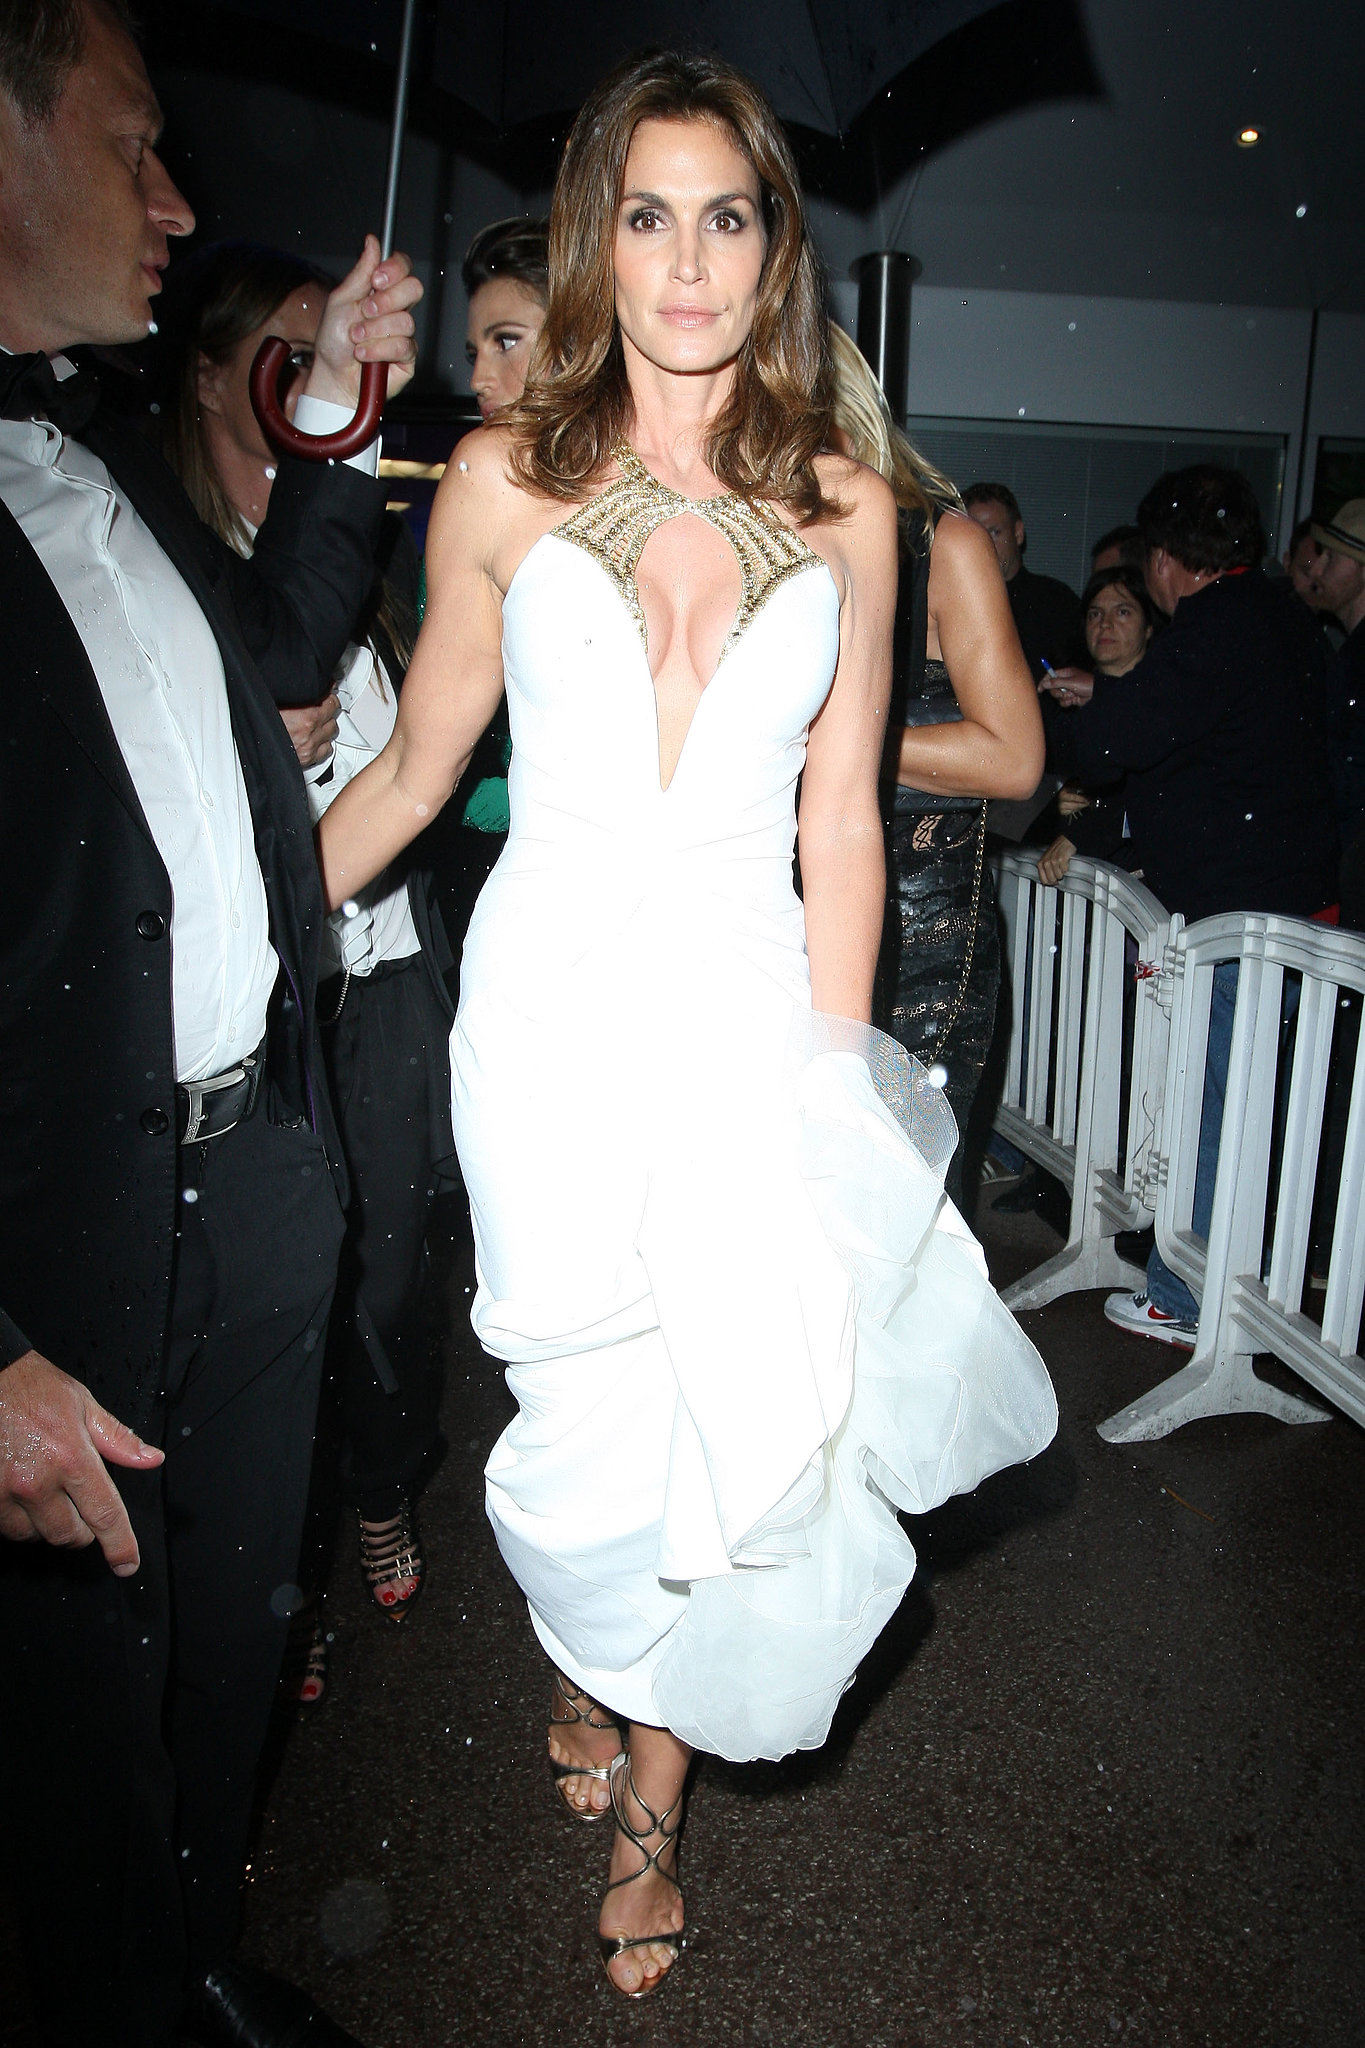 Cindy Crawford brought sexy to the Great Gatsby premiere in Cannes in a white Roberto Cavalli cutout gown with a contrasting gold nec